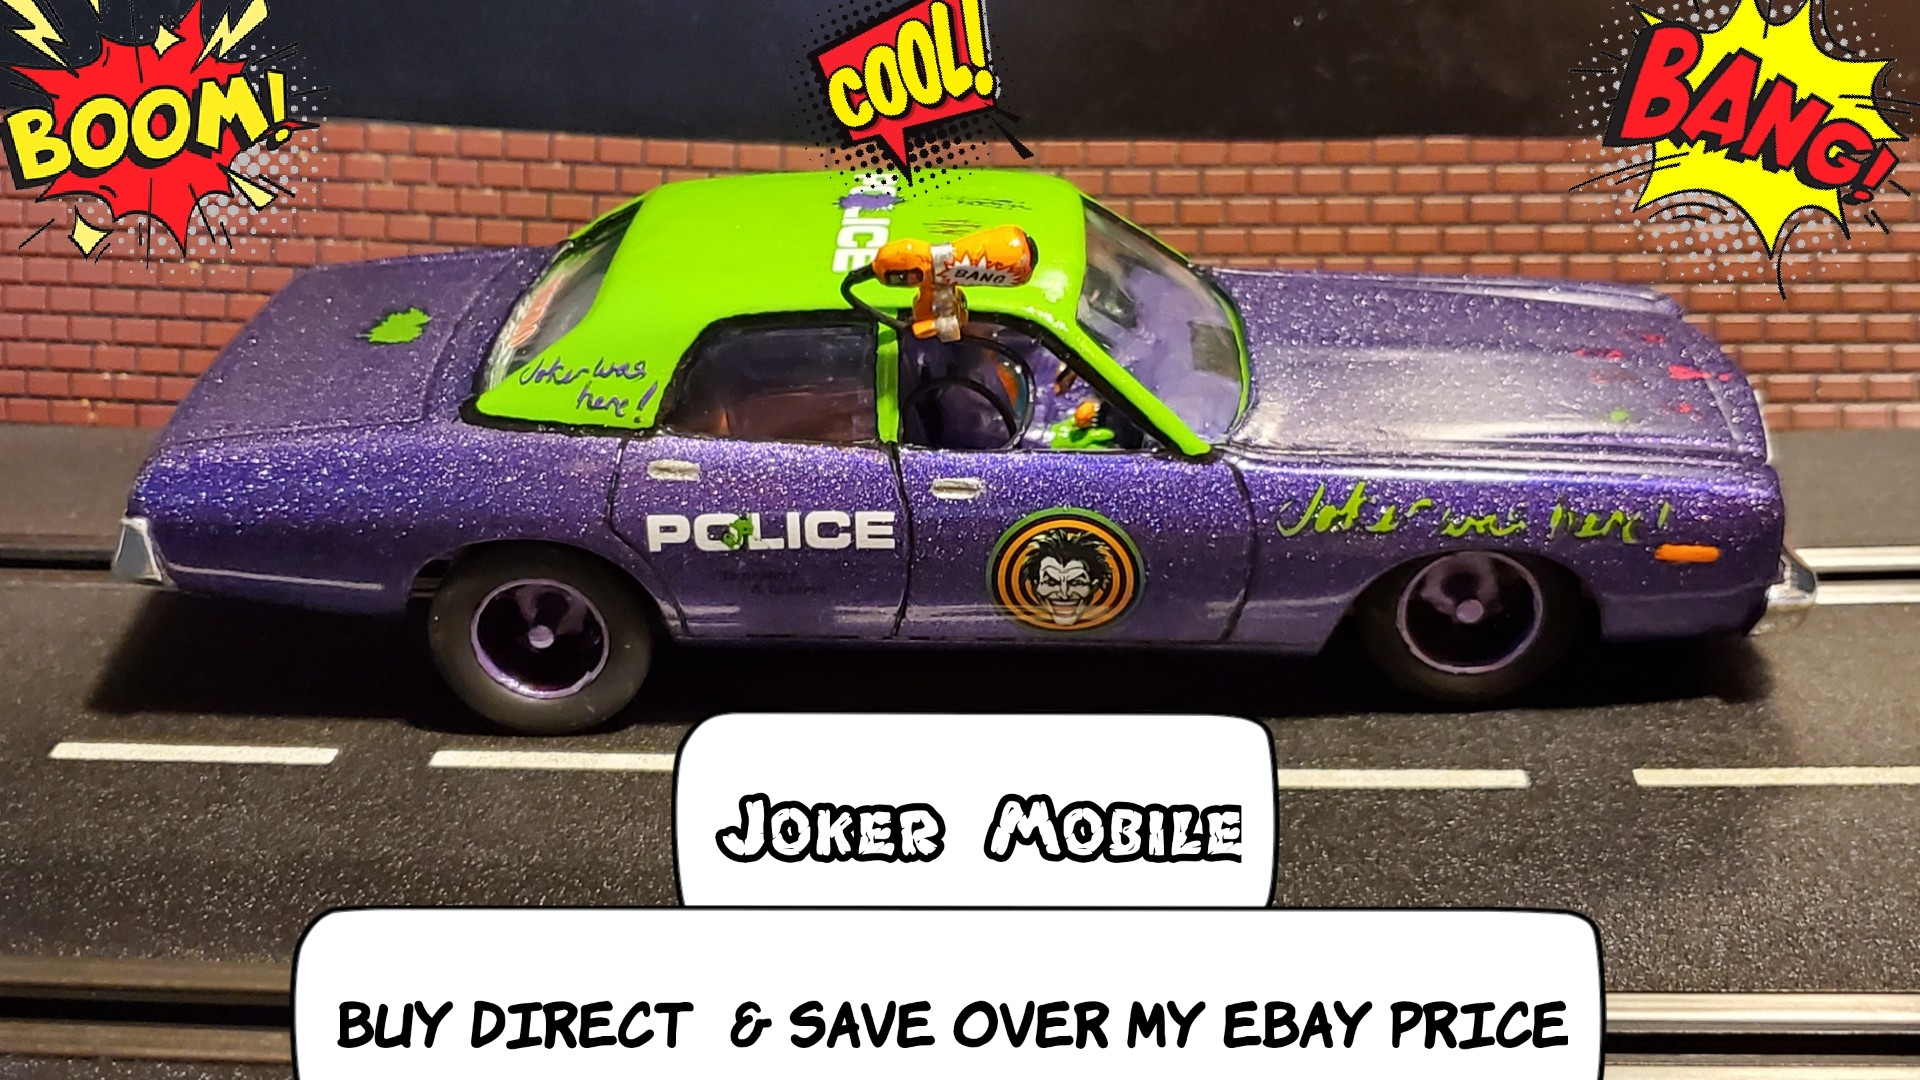 * Super September SALE * Save $$ vs. my Ebay Store * The Gotham City Joker Mobile Getaway Slot Car 1/24 Scale - Pearl Metal Flake Purple with Metallic Lime Green Paint, Multi Stage Clear Coat with Ceramic Coating